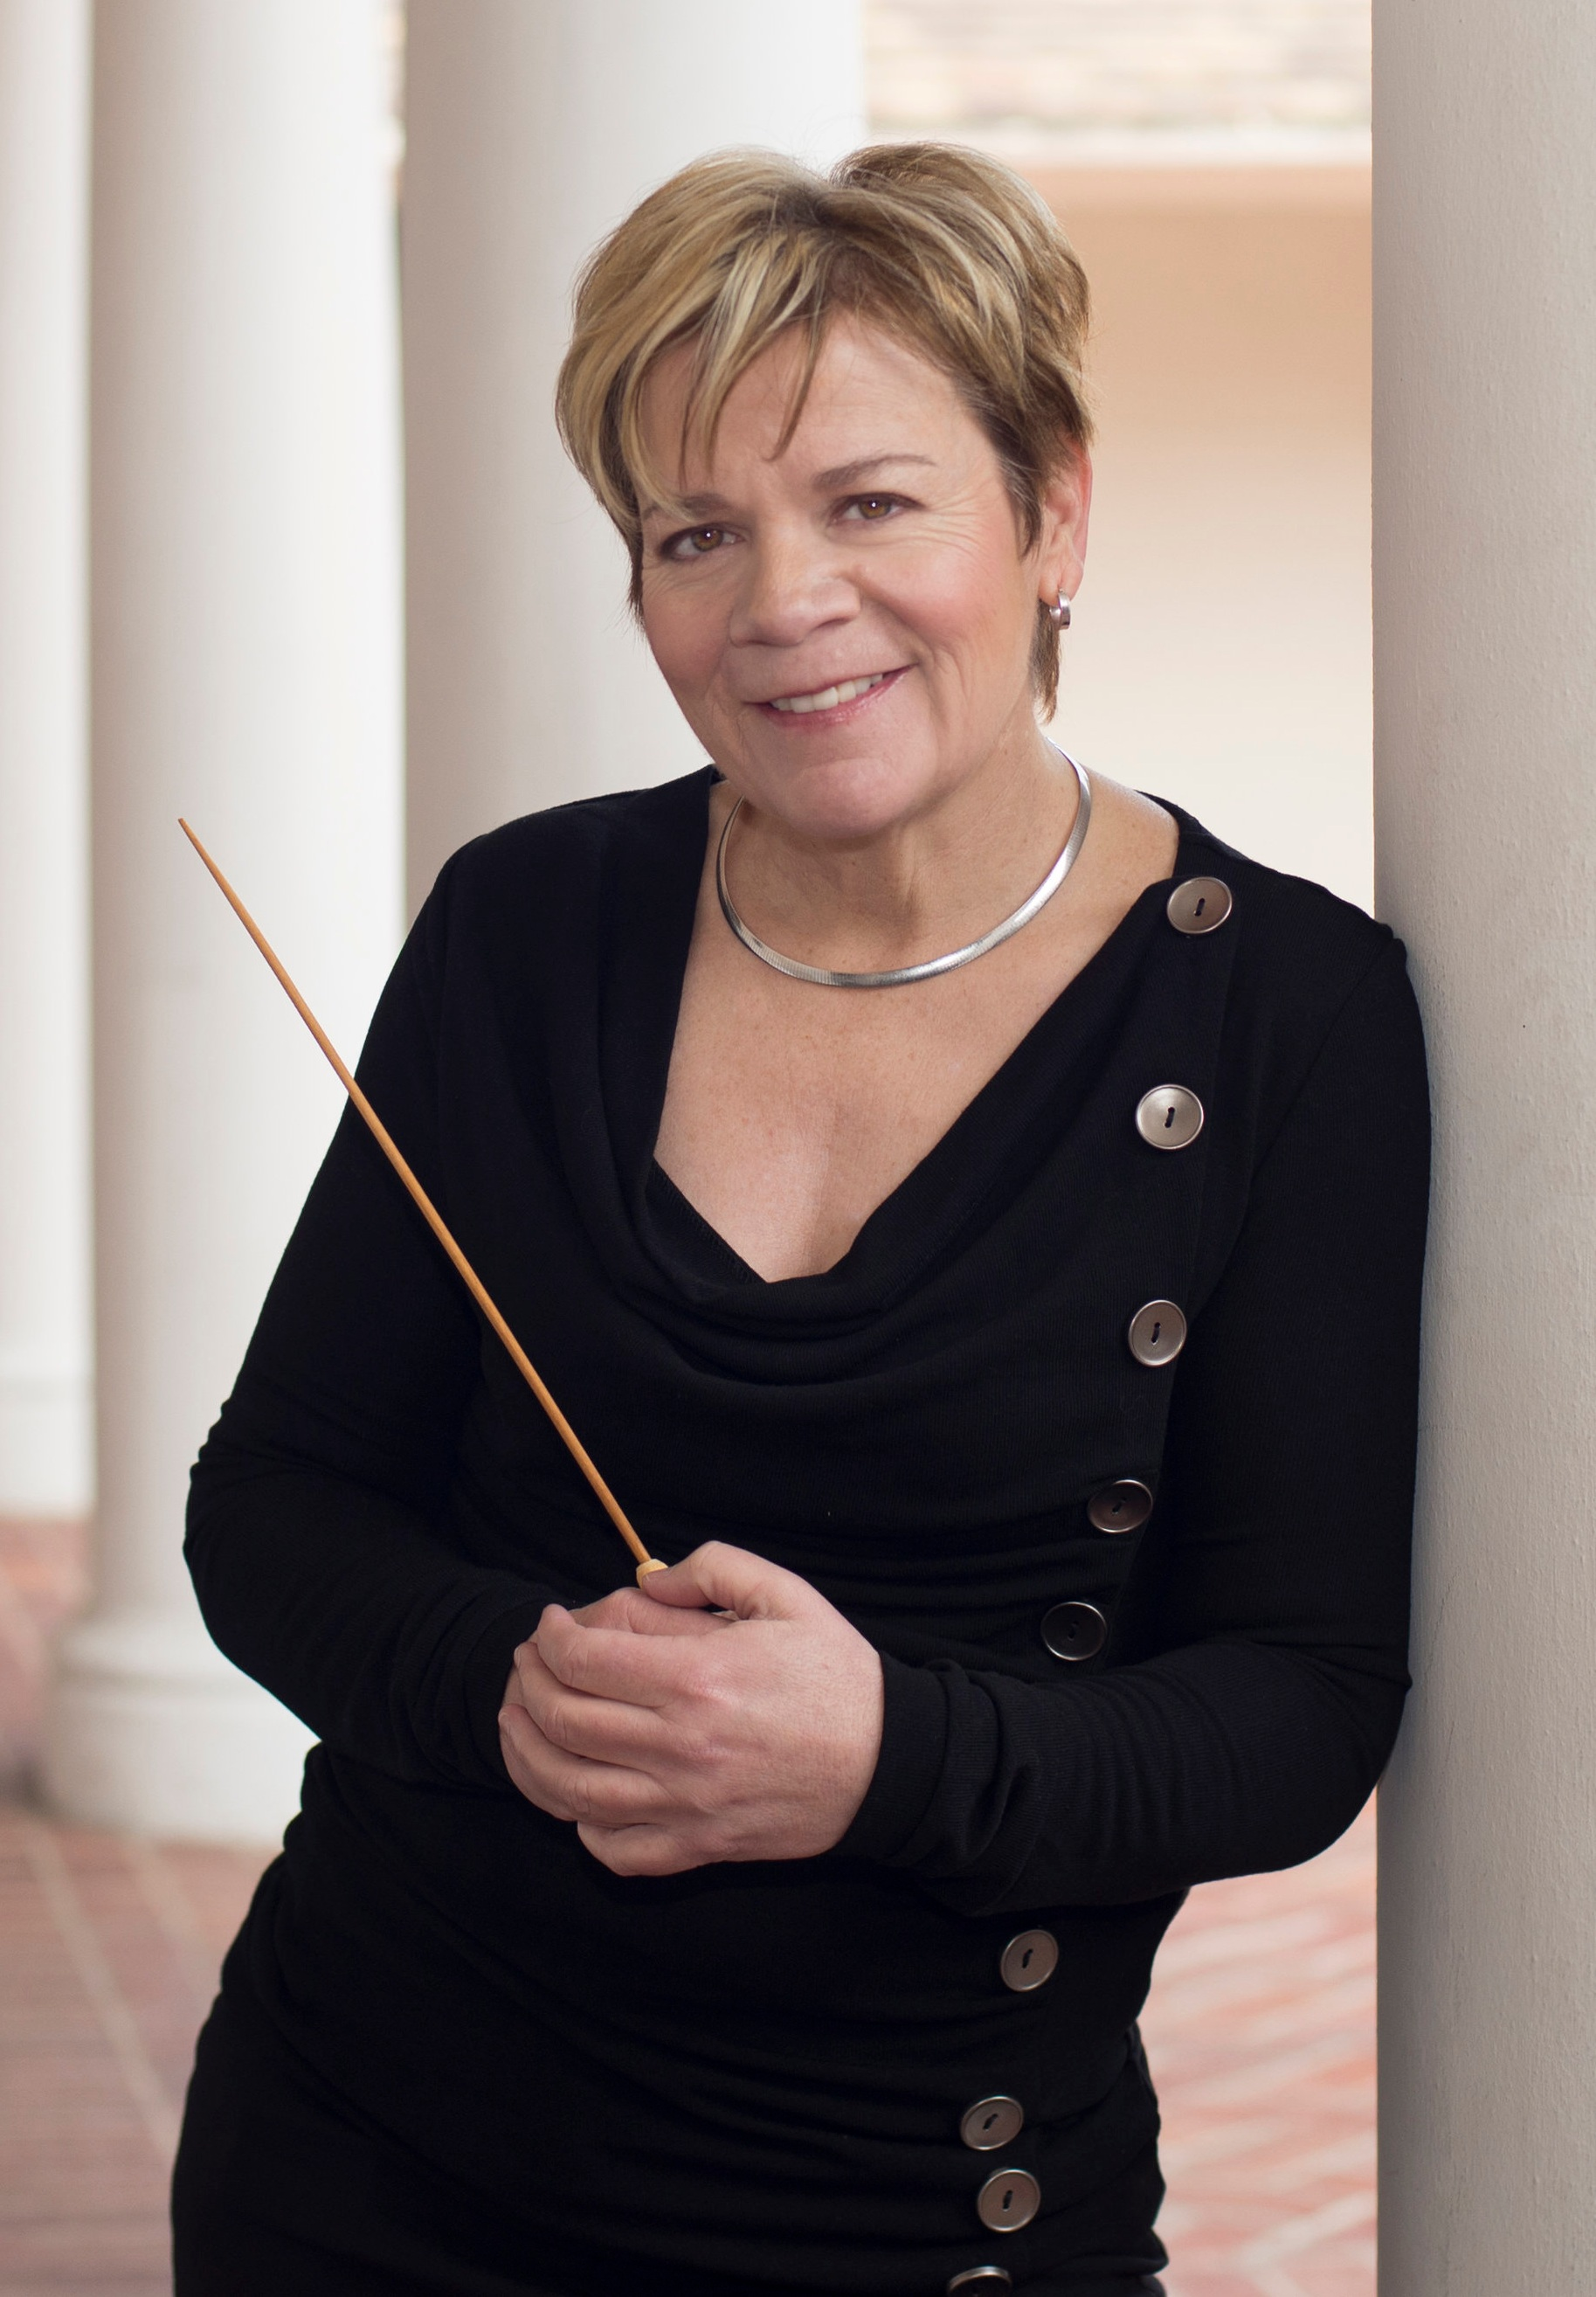 Conductor Marin Alsop curated Ravinia's two-year Bernstein celebration